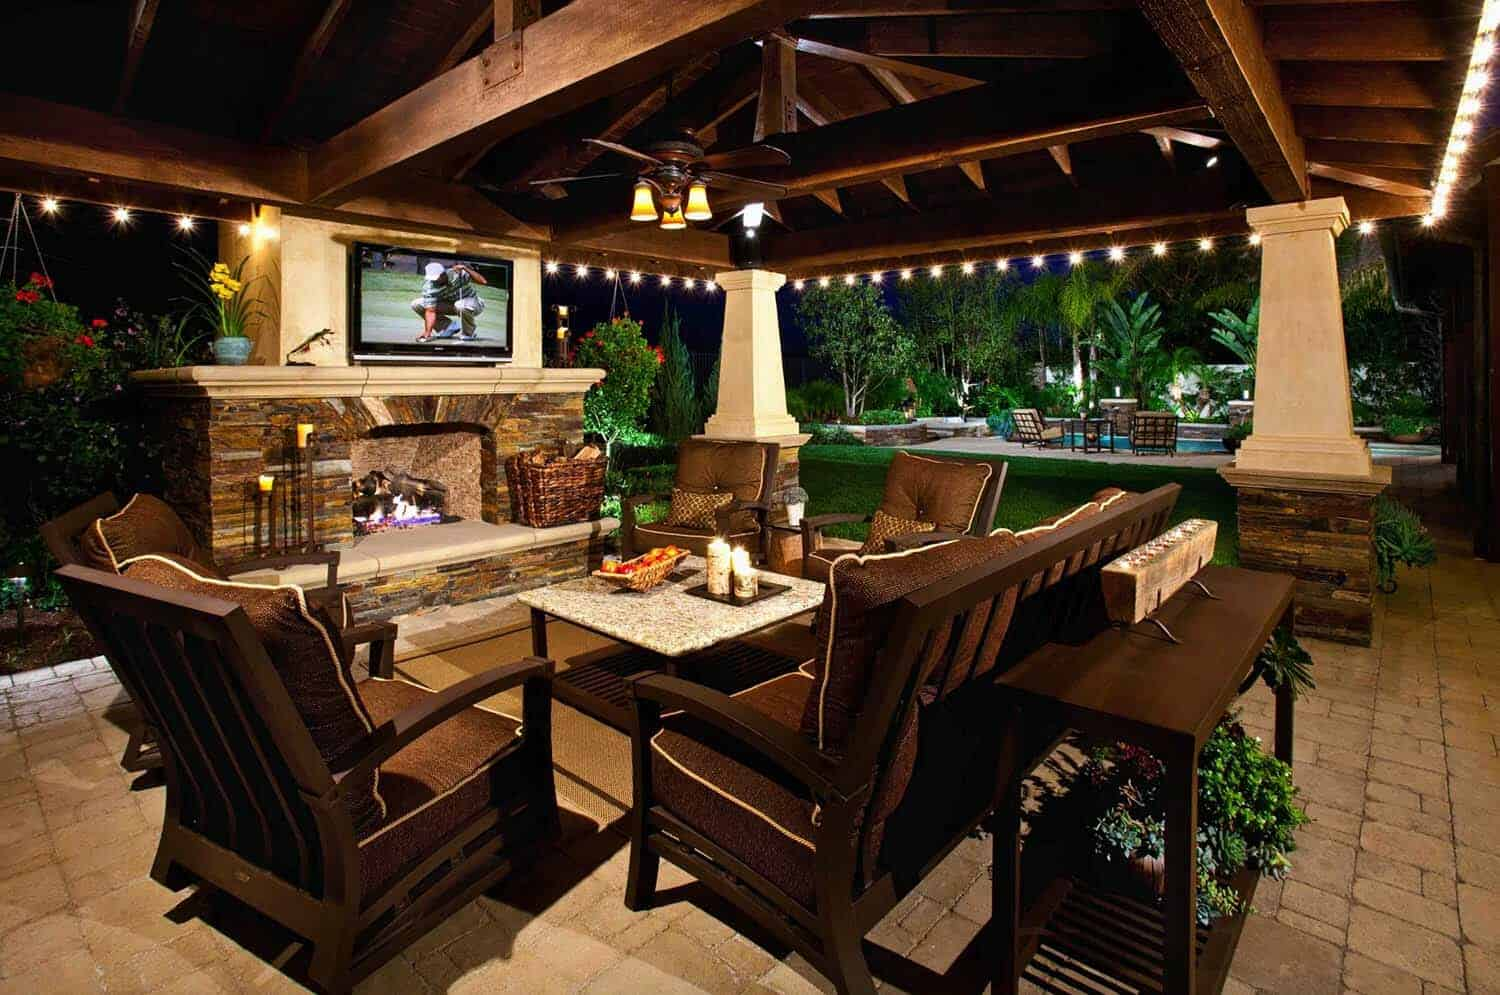 25+ Fabulous outdoor patio ideas to get ready for spring ... on Backyard Porch Ideas id=21473